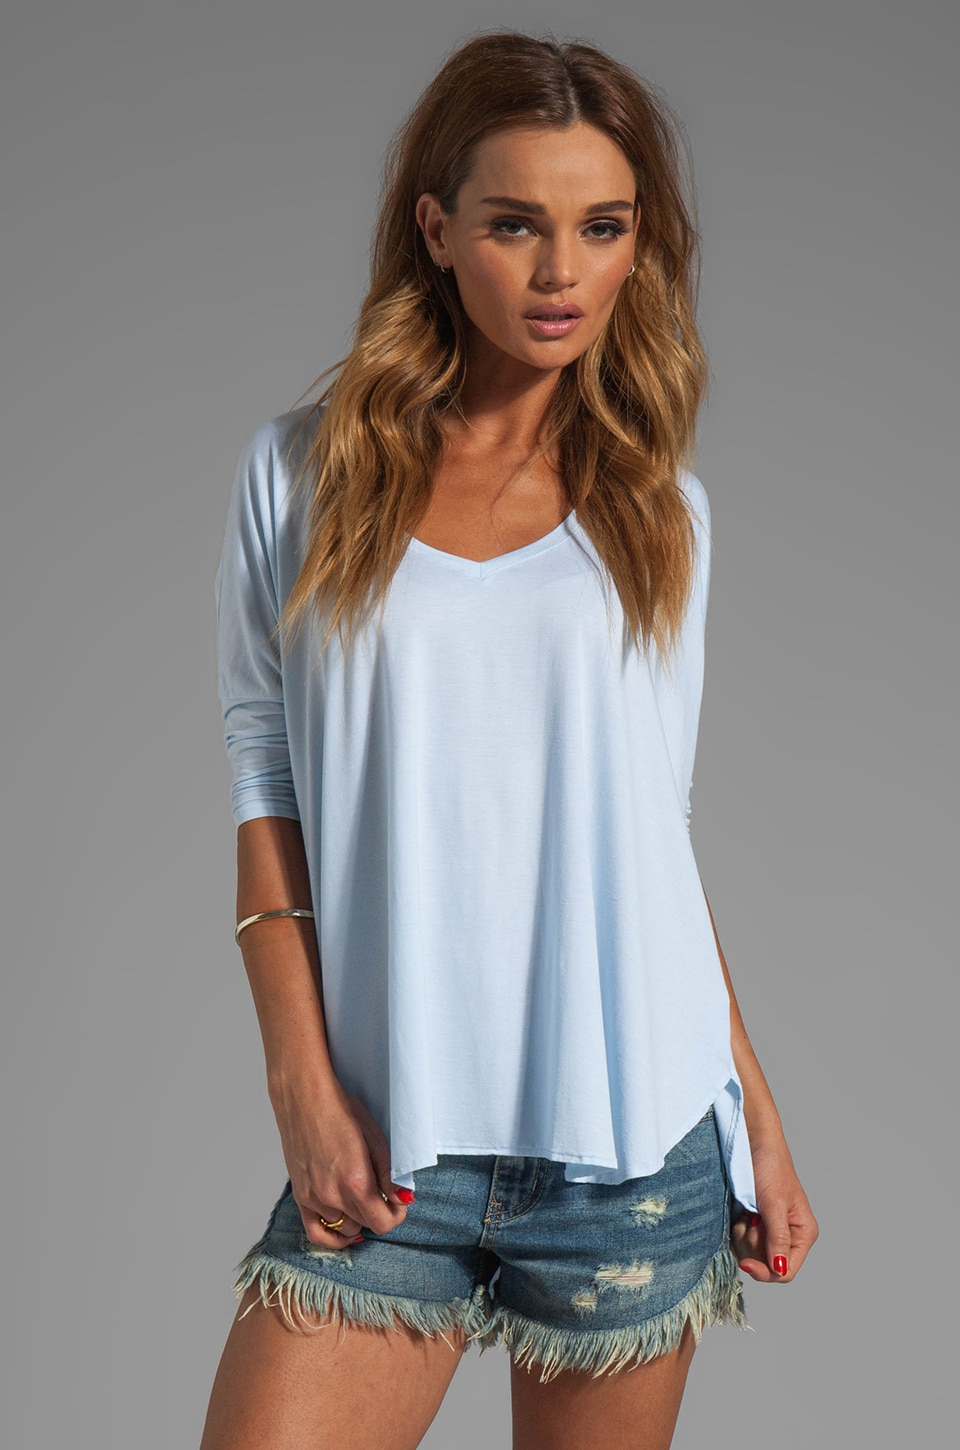 Feel the Piece Sparrow Oversized Tee in Powder Blue